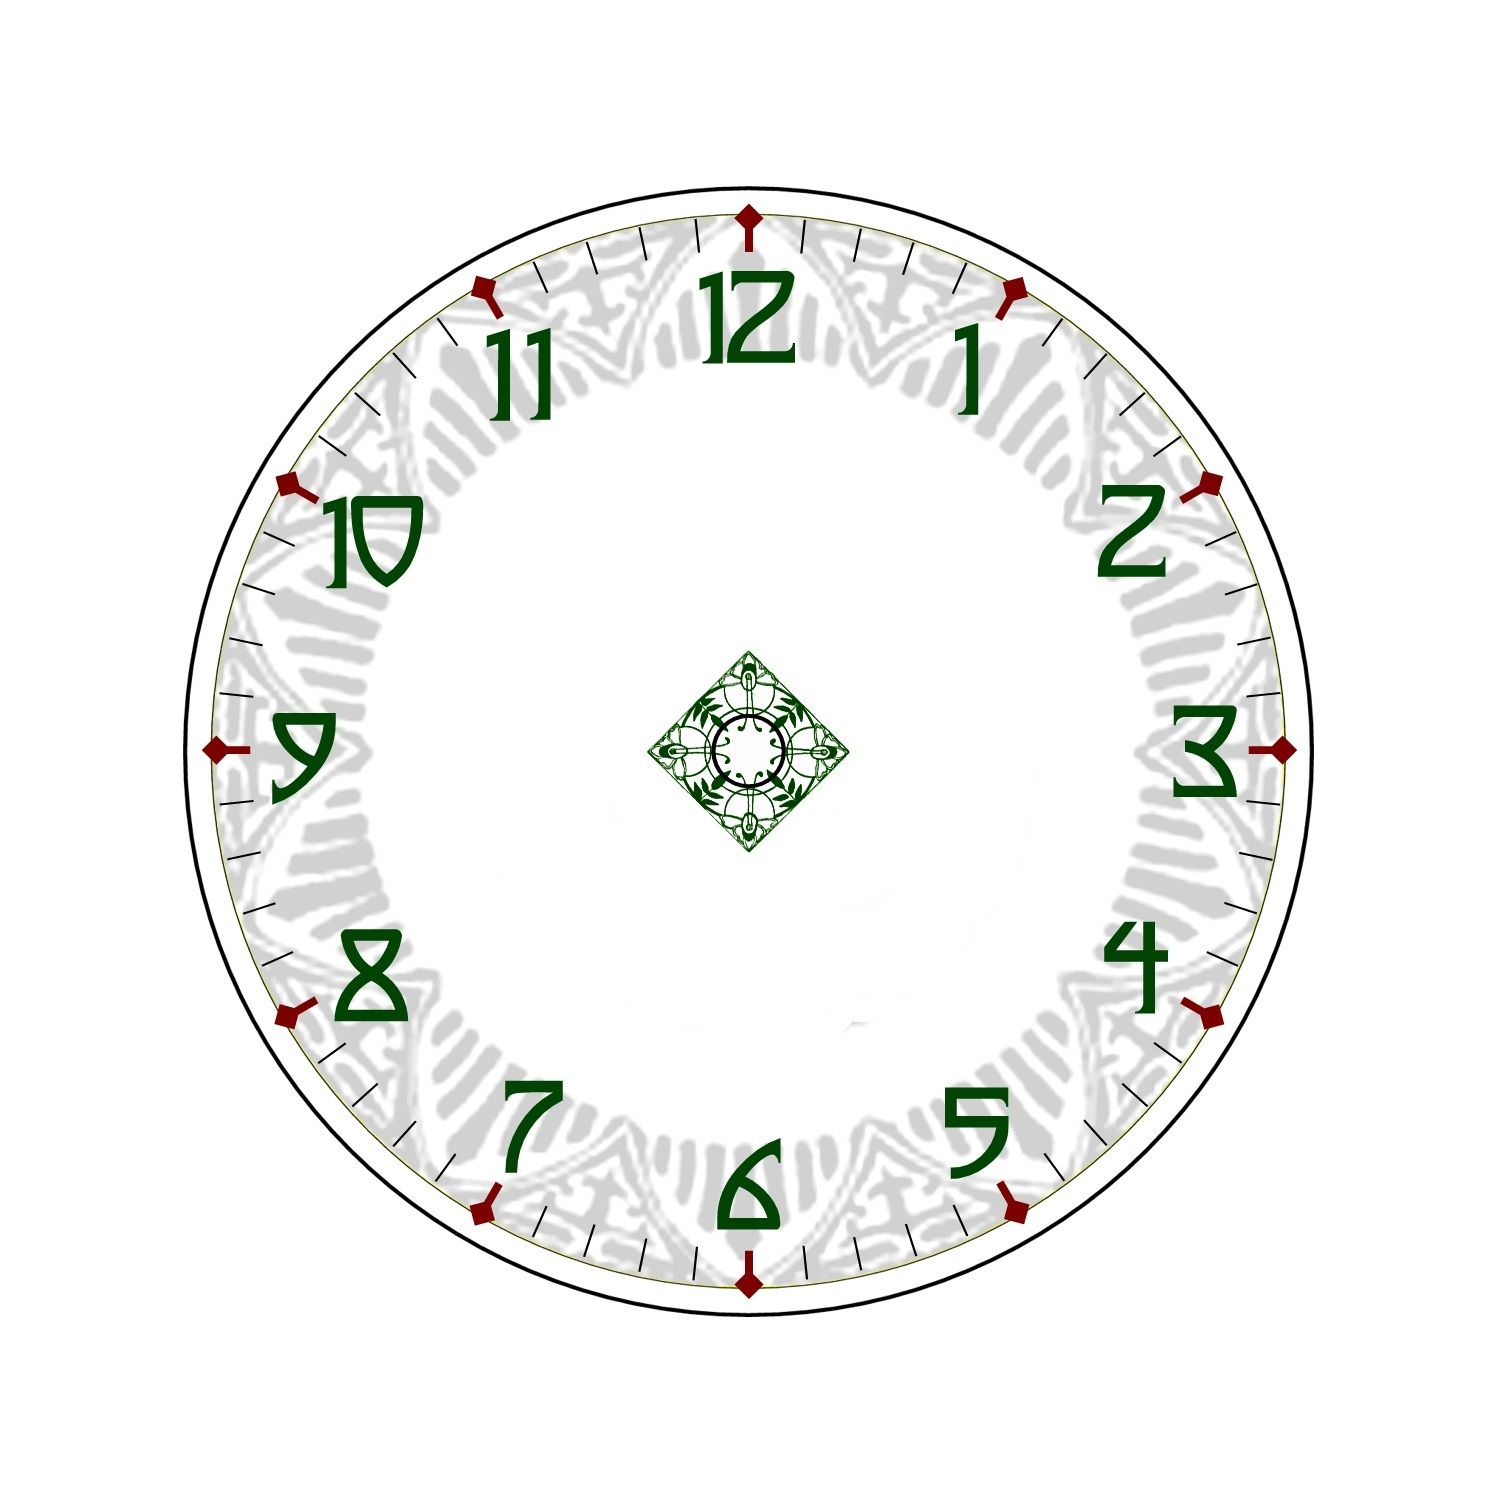 Free Clock Faces Printable | Clock faces for hobby woodworking